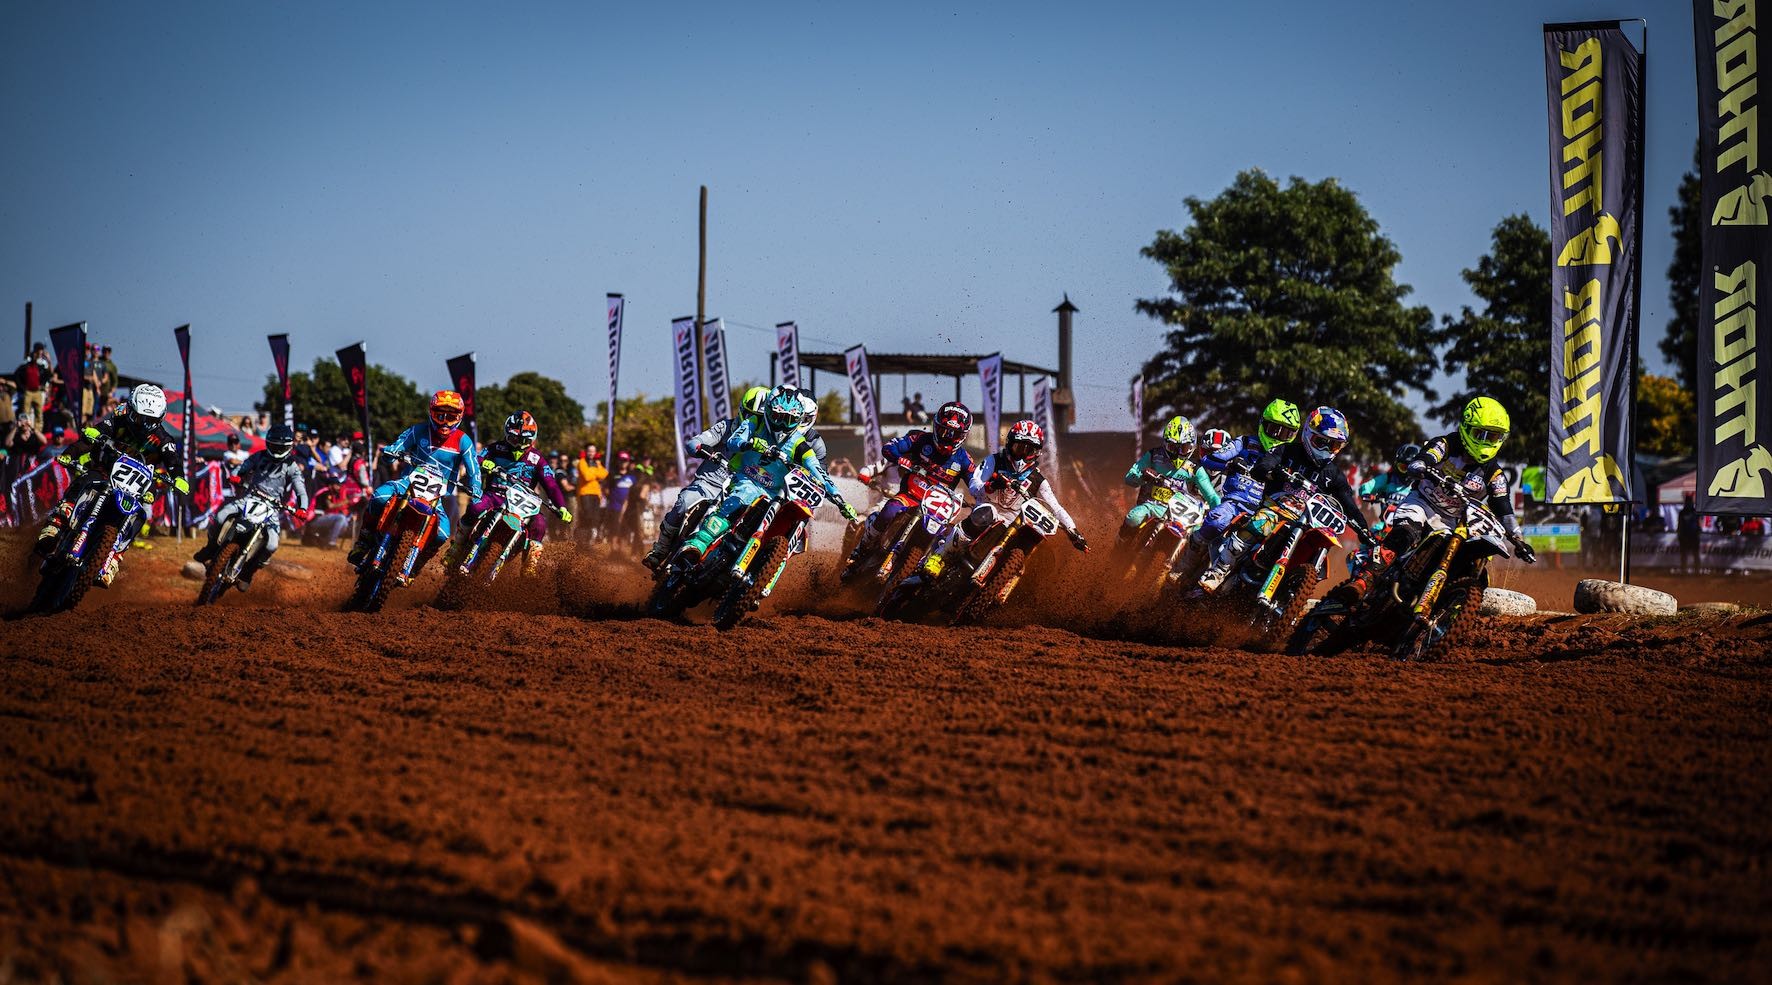 Race Report from Round 3 of the South African Motocross Nationals